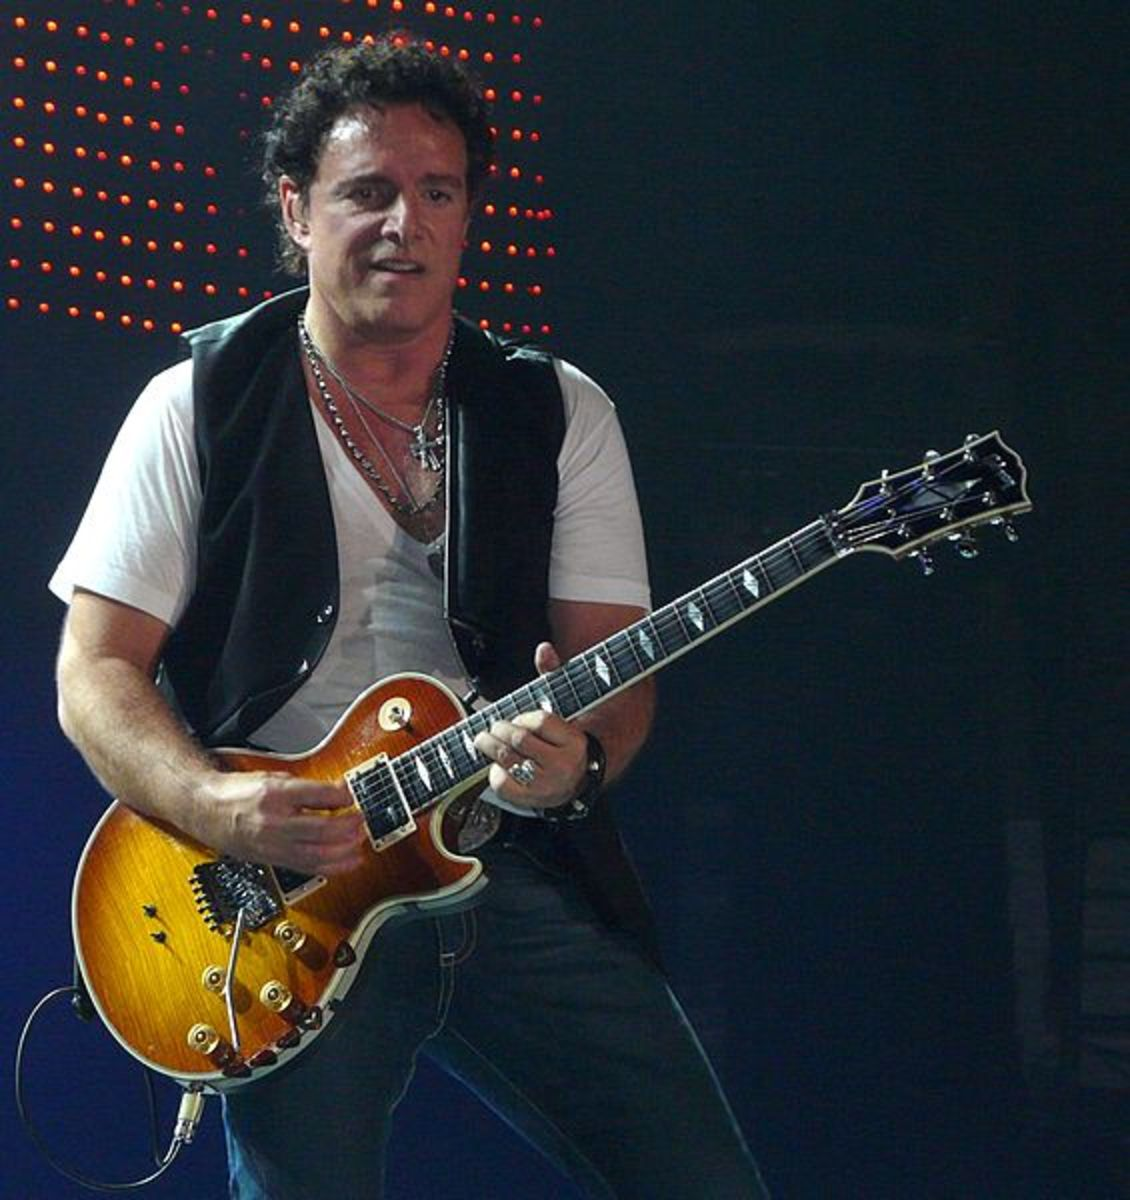 Journey still rocks, and Neal Schon still pulls incredible sounds from his Les Paul guitars.